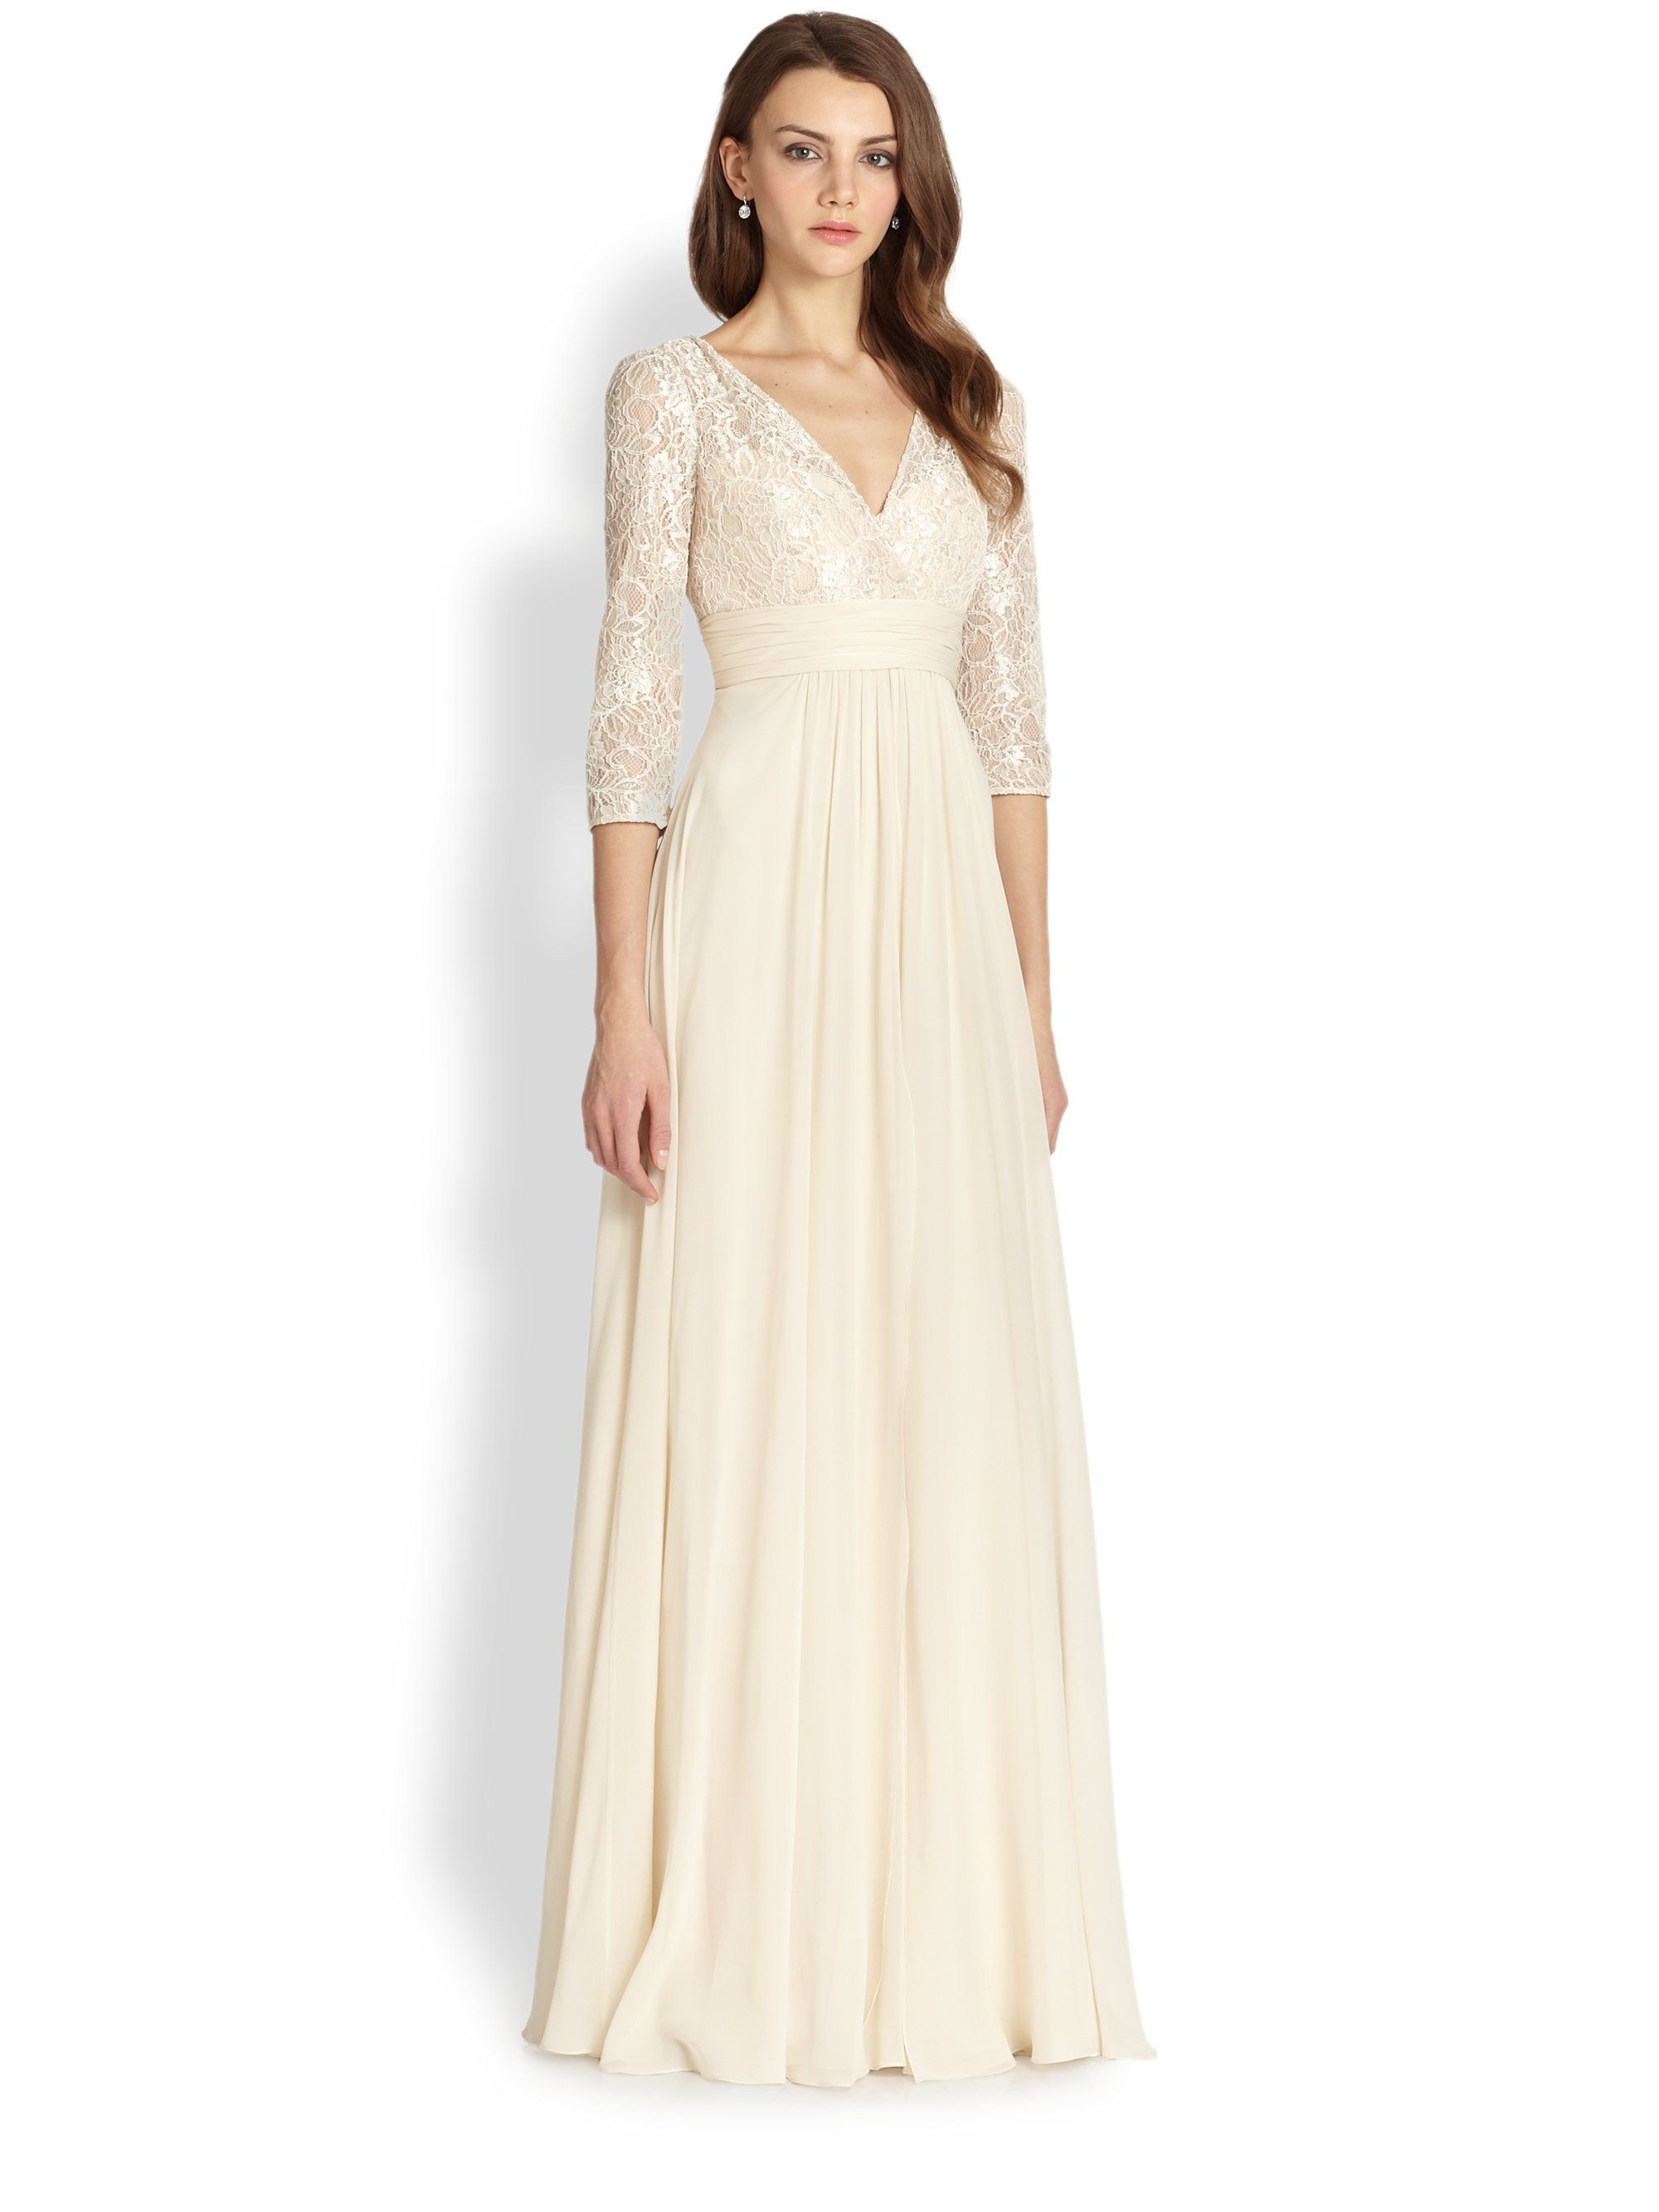 Elegant Chiffon Of The Bride Groom Dresses For Mother | Wedding ...